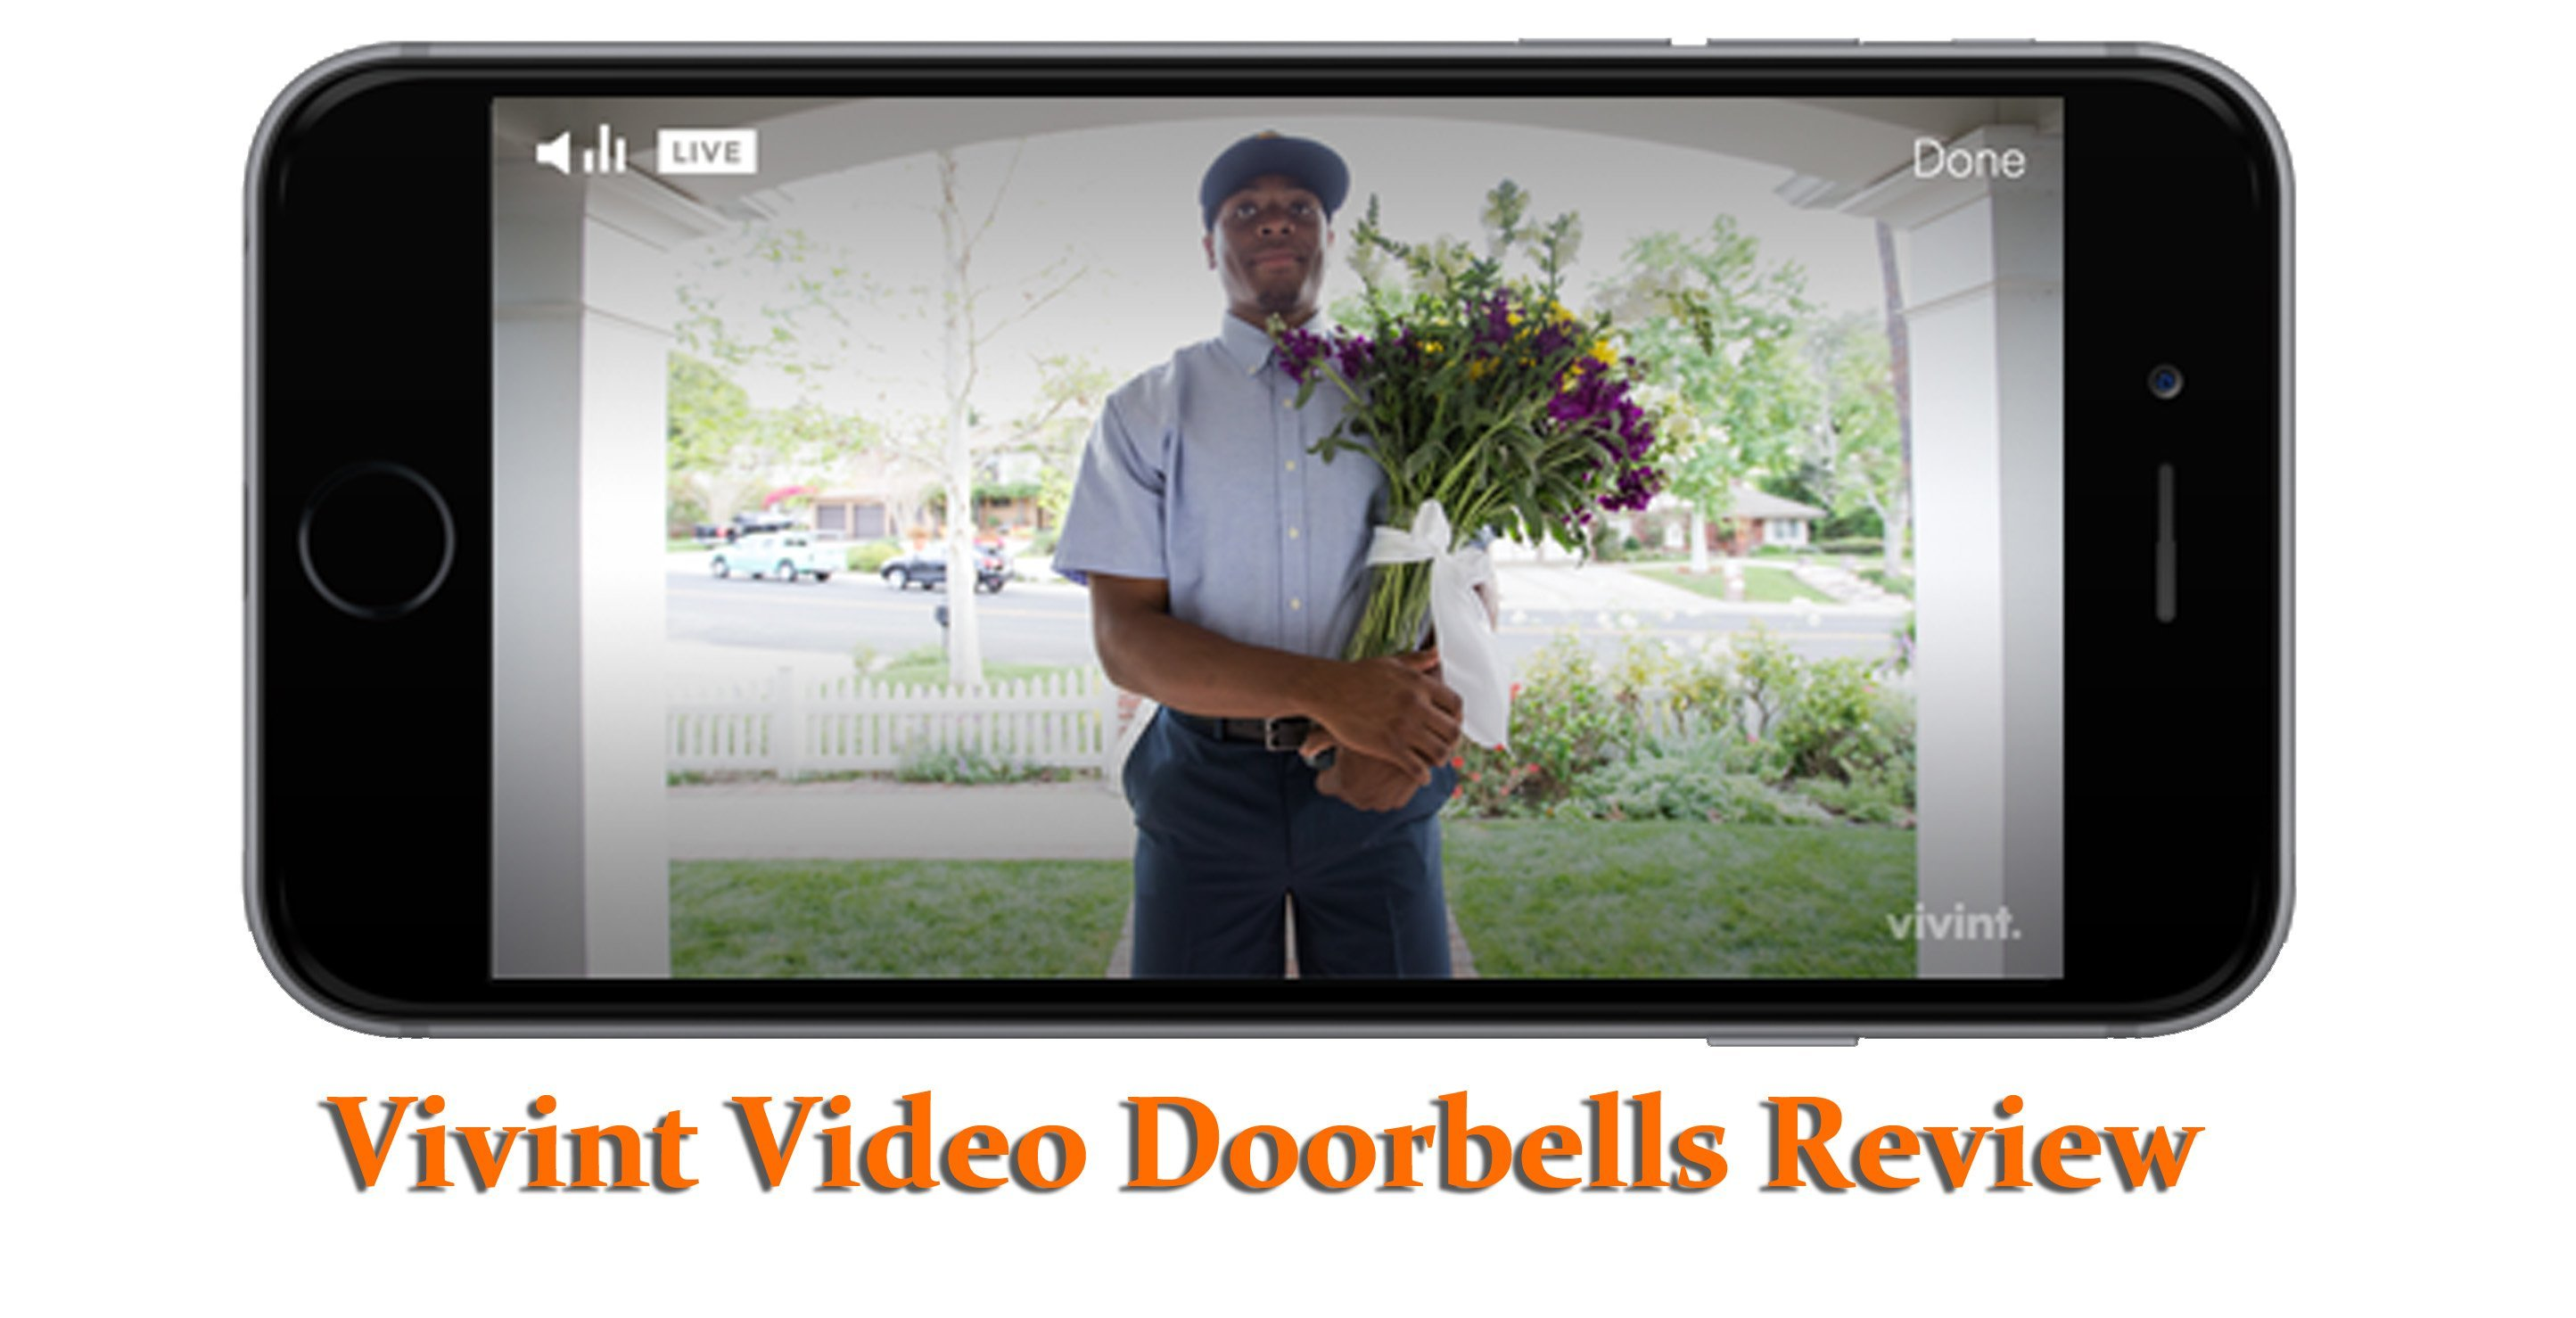 Featured image for article: Vivint video doorbell review